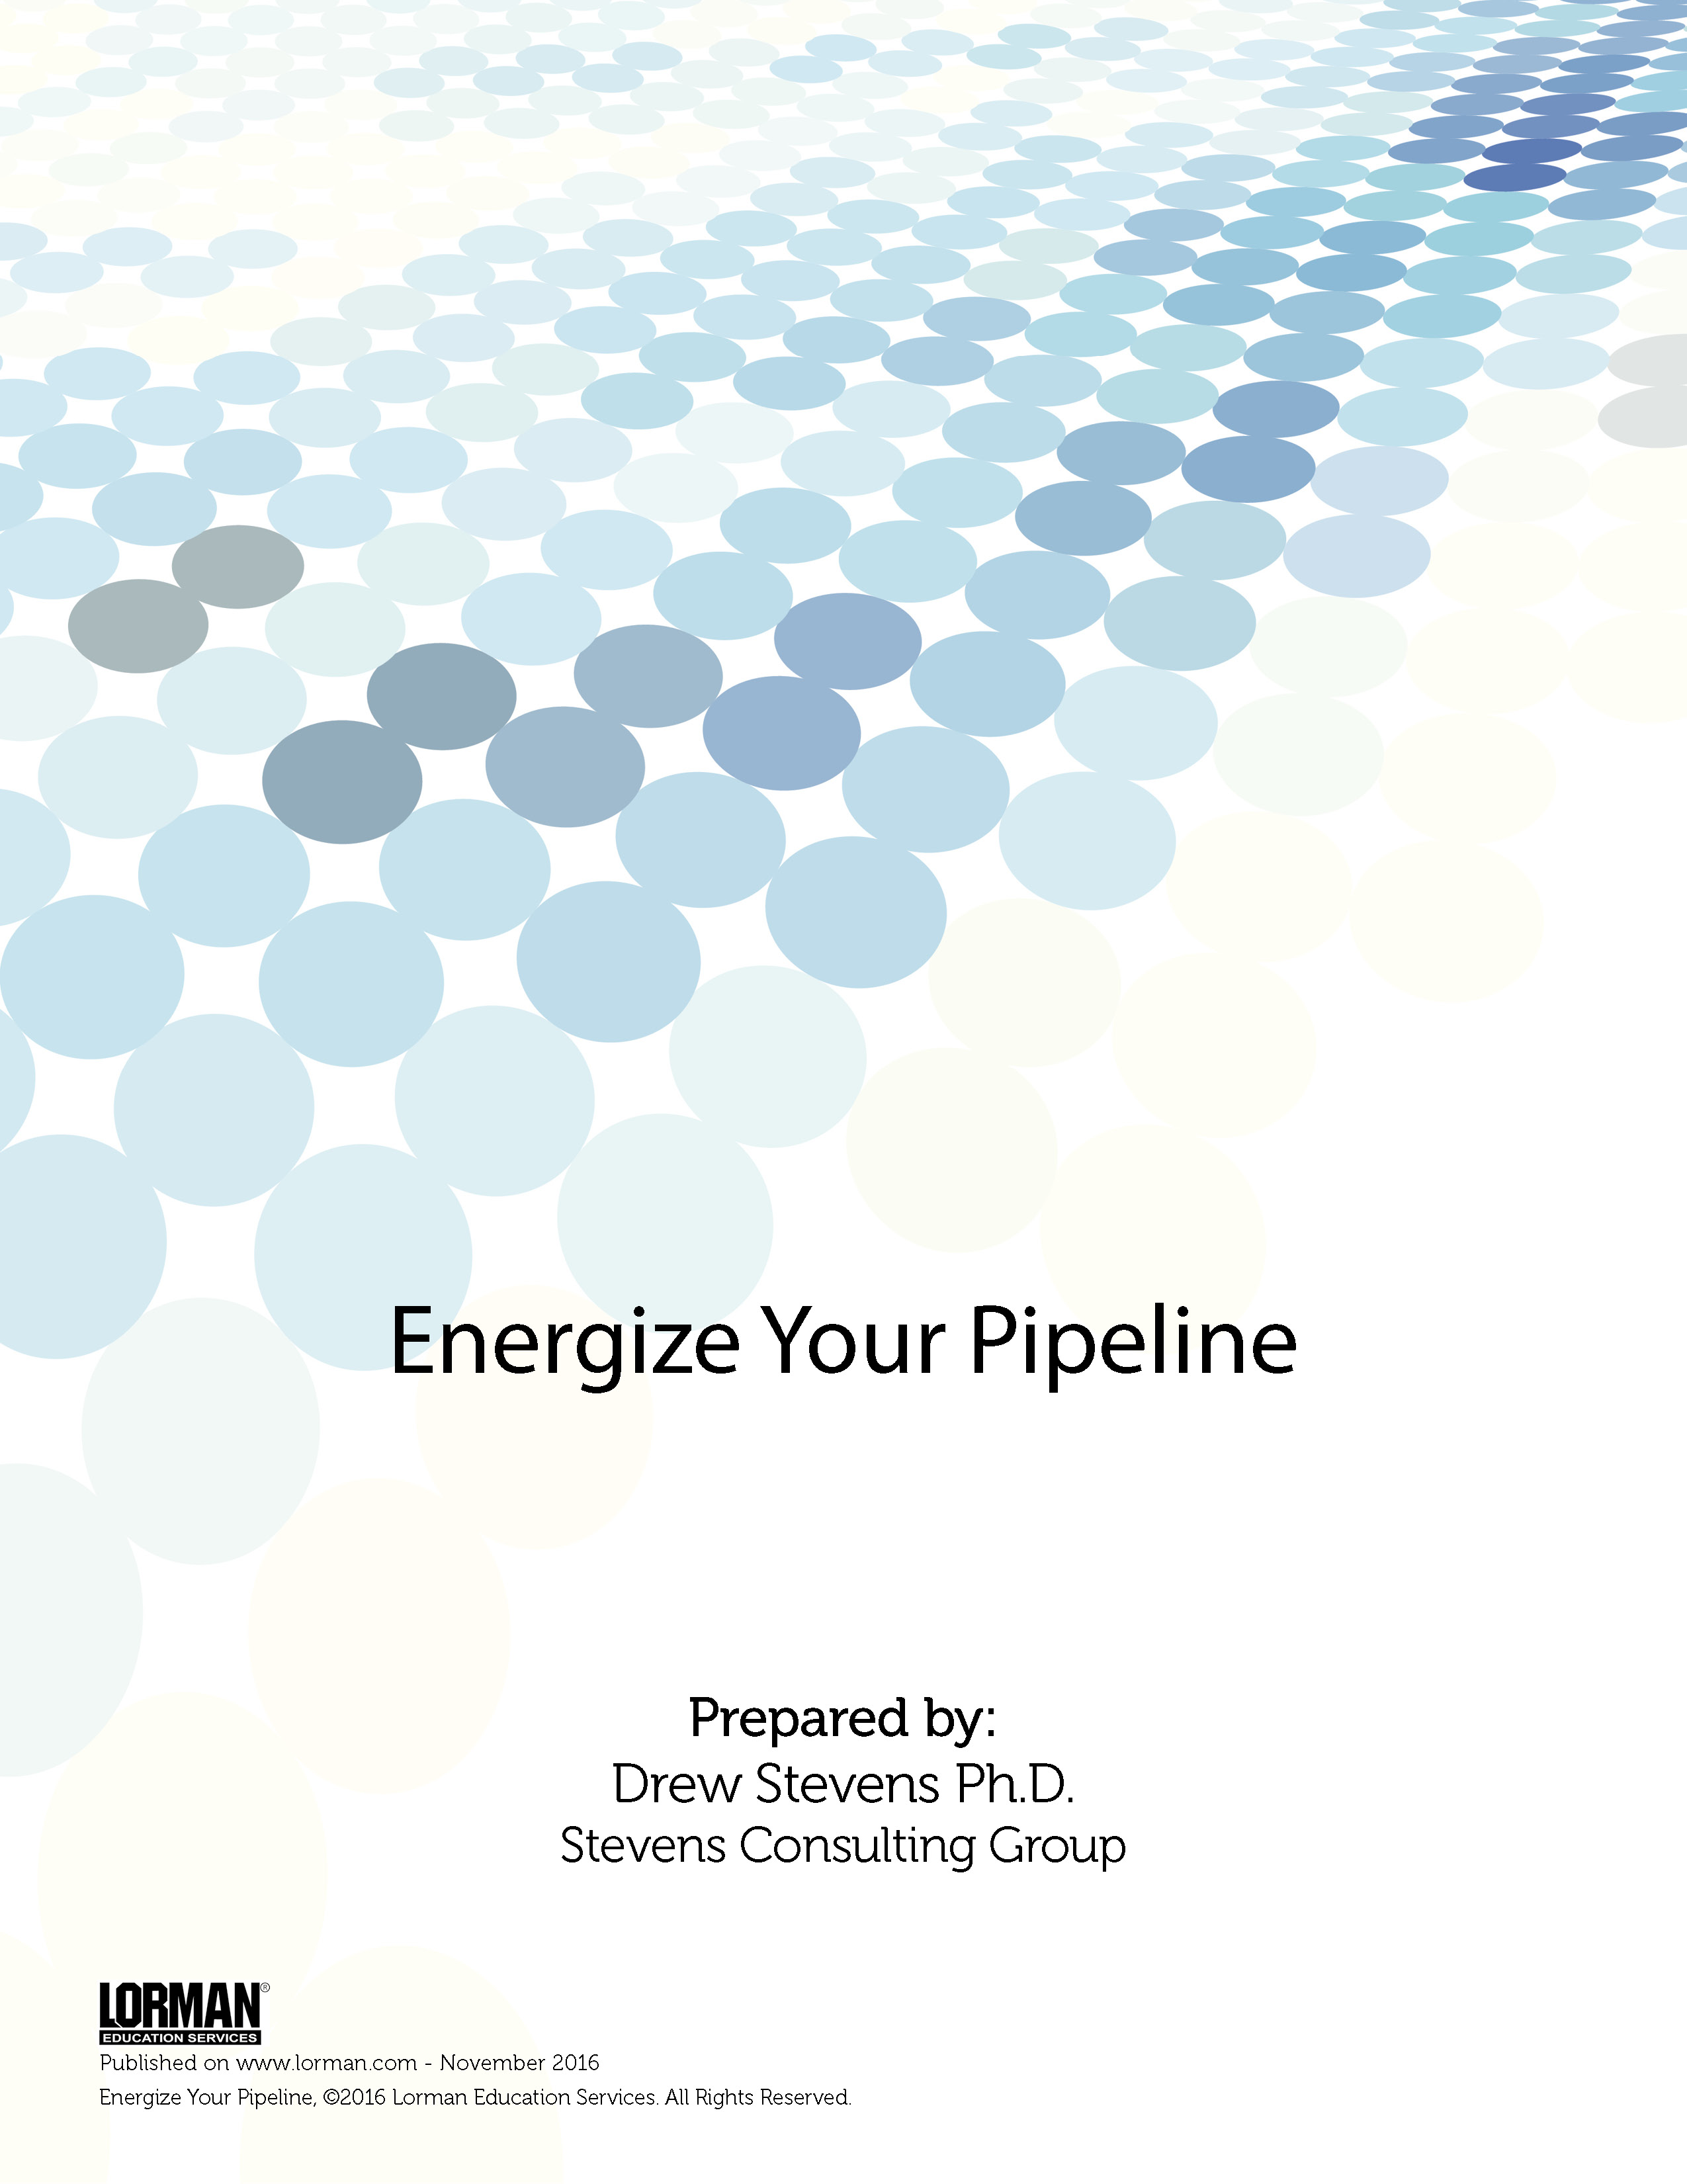 Energize Your Pipeline